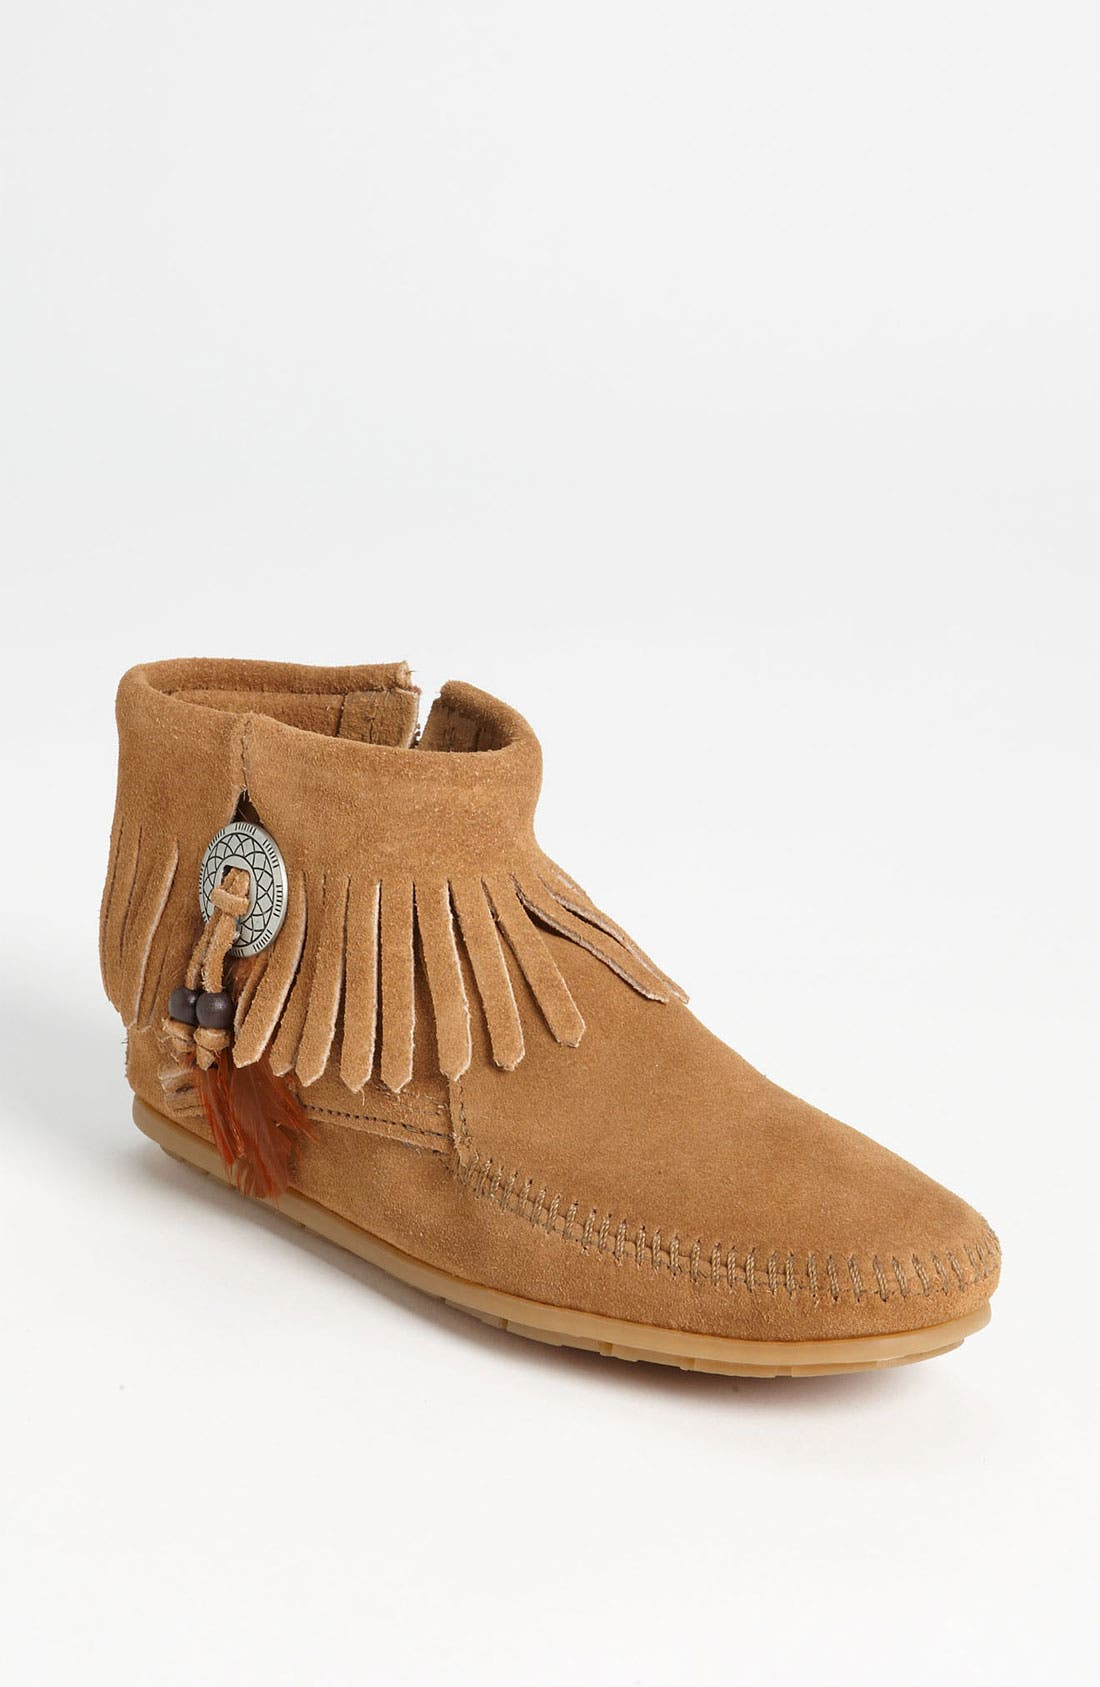 Main Image - Minnetonka 'Concho Feather' Moccasin